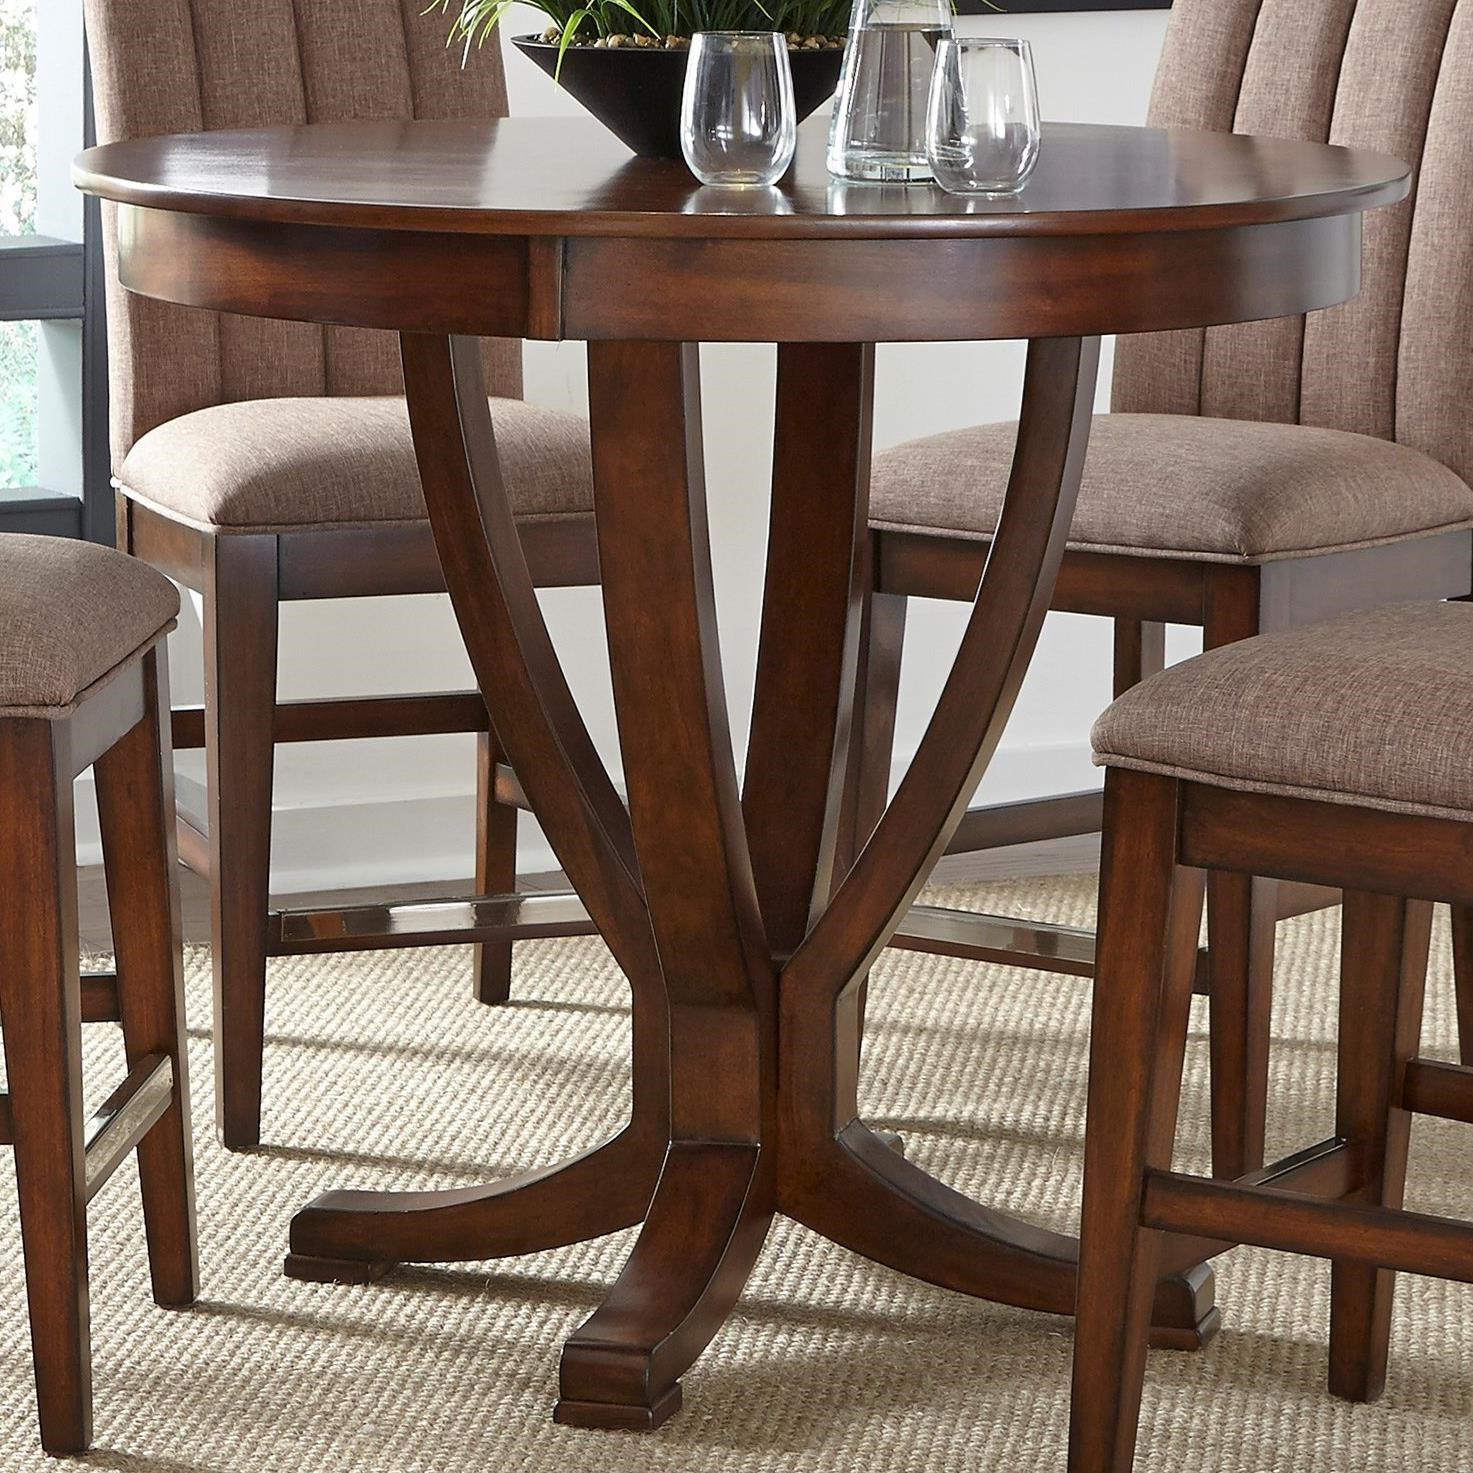 Liberty Furniture Mirage Dining Round Gathering Table - Item Number: 234-GT4242+GT4242B